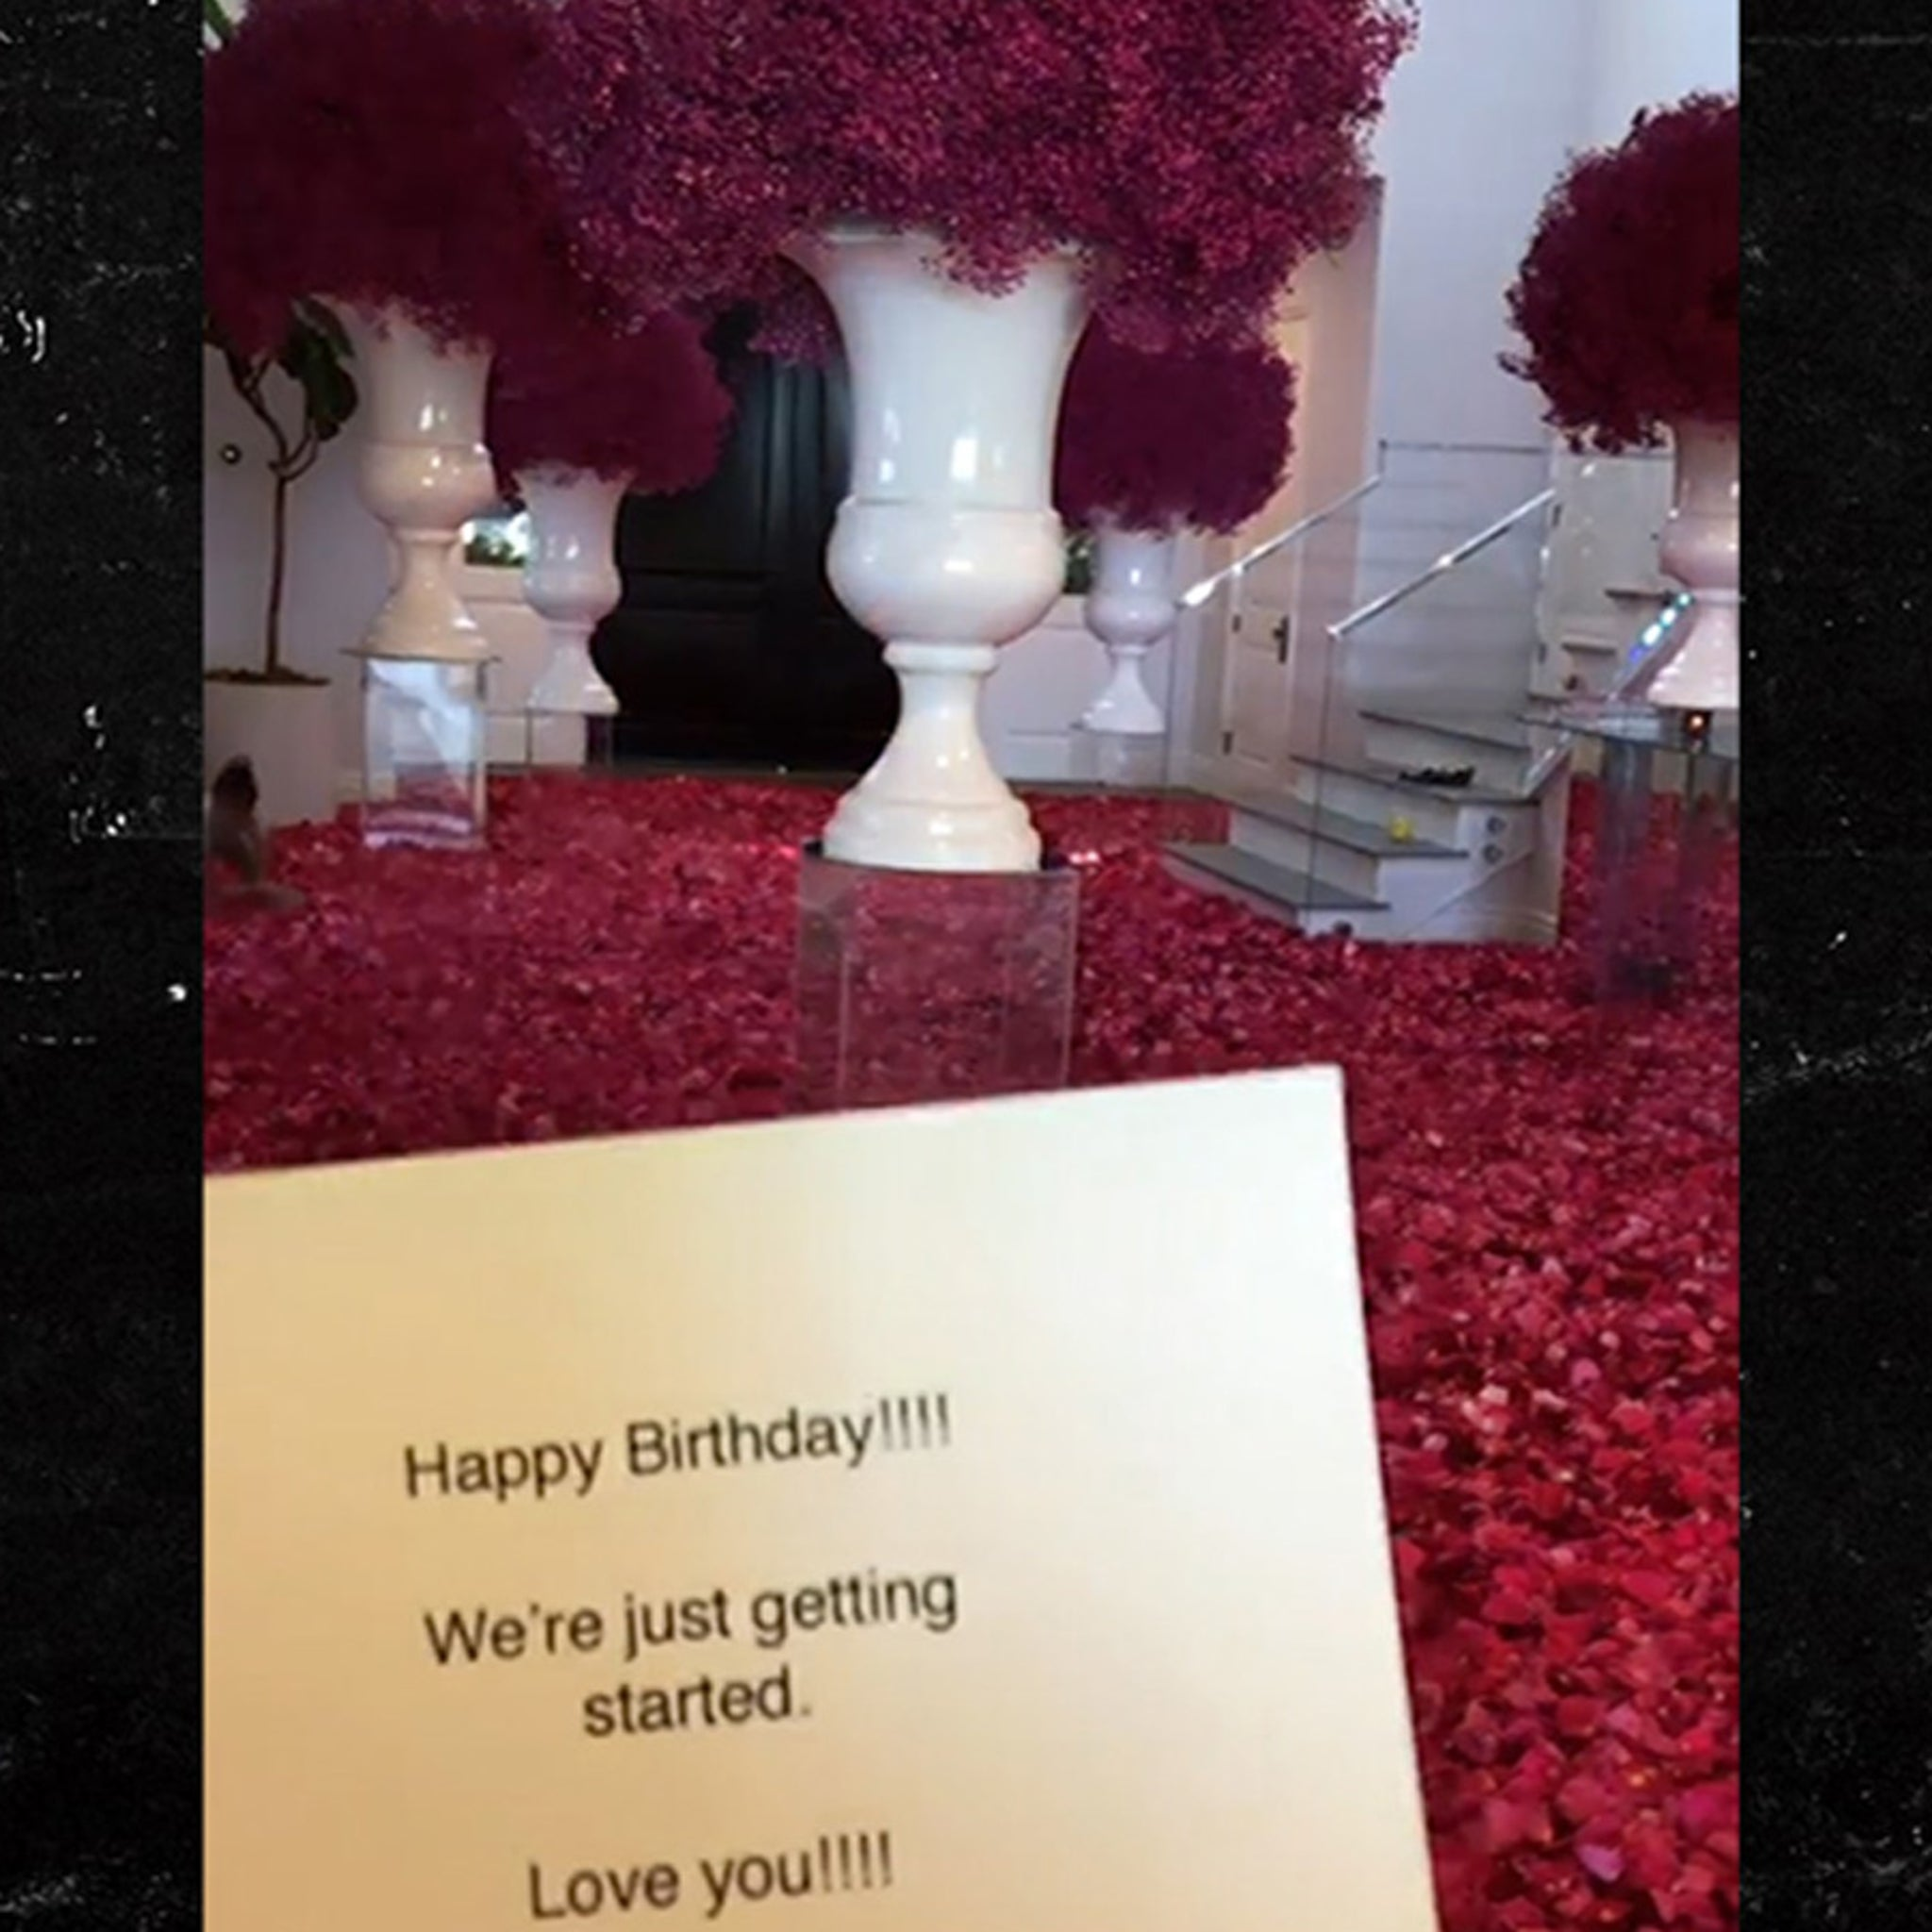 Kylie Jenner's House Covered in Roses, Birthday Gift from